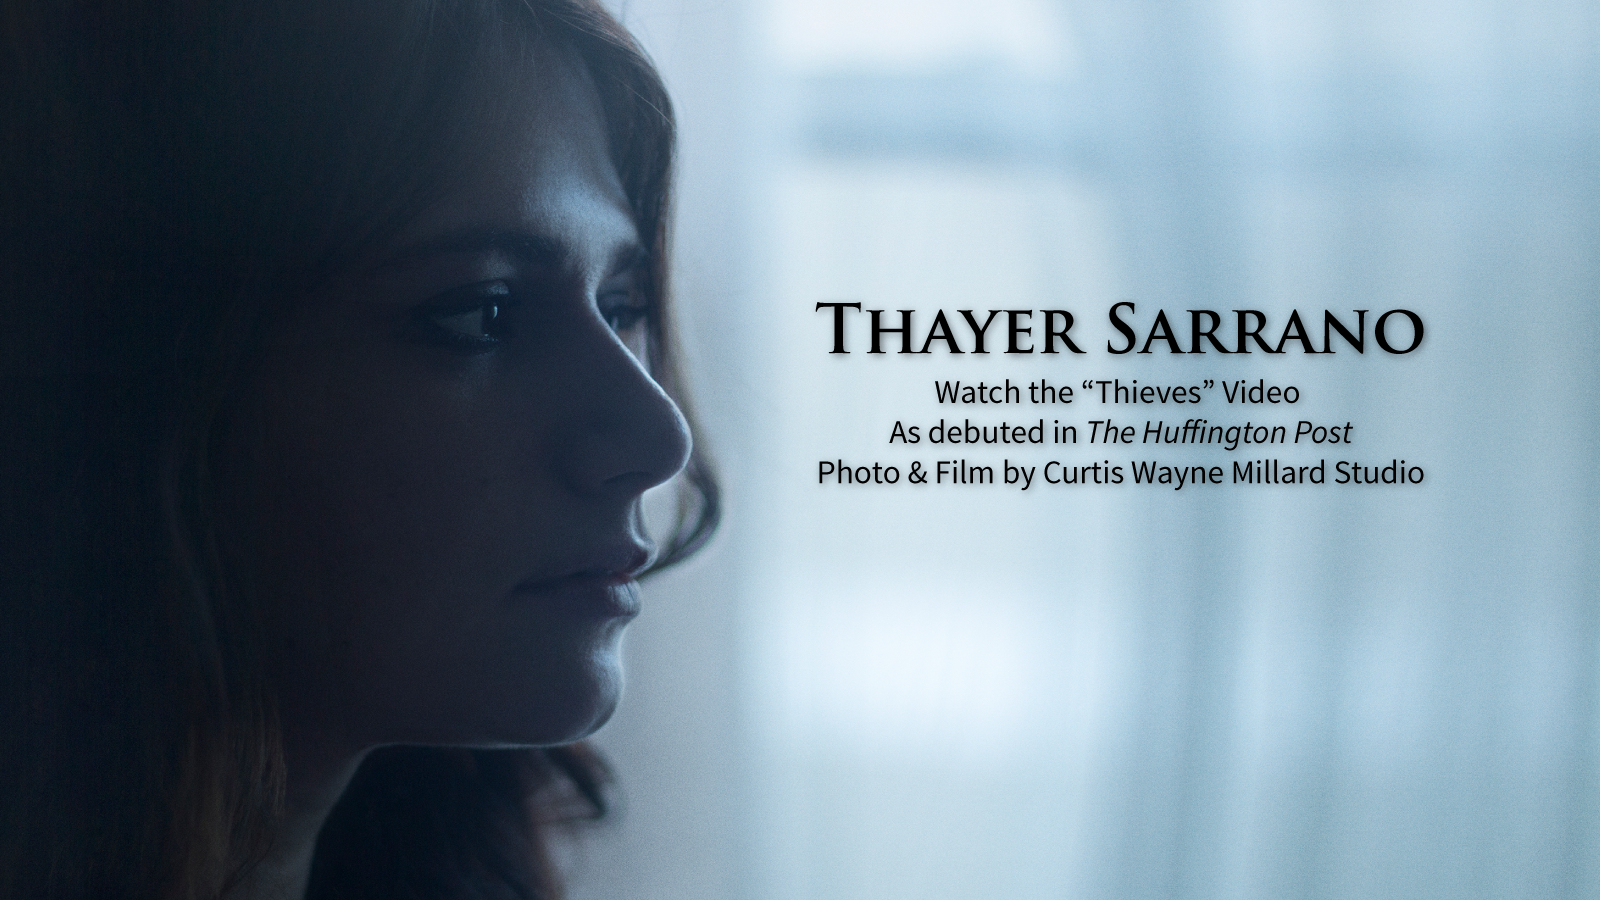 Thayer Sarrano. Thieves Video. Huffington Post. CWM Studio. Curtis Wayne Millard Studio.